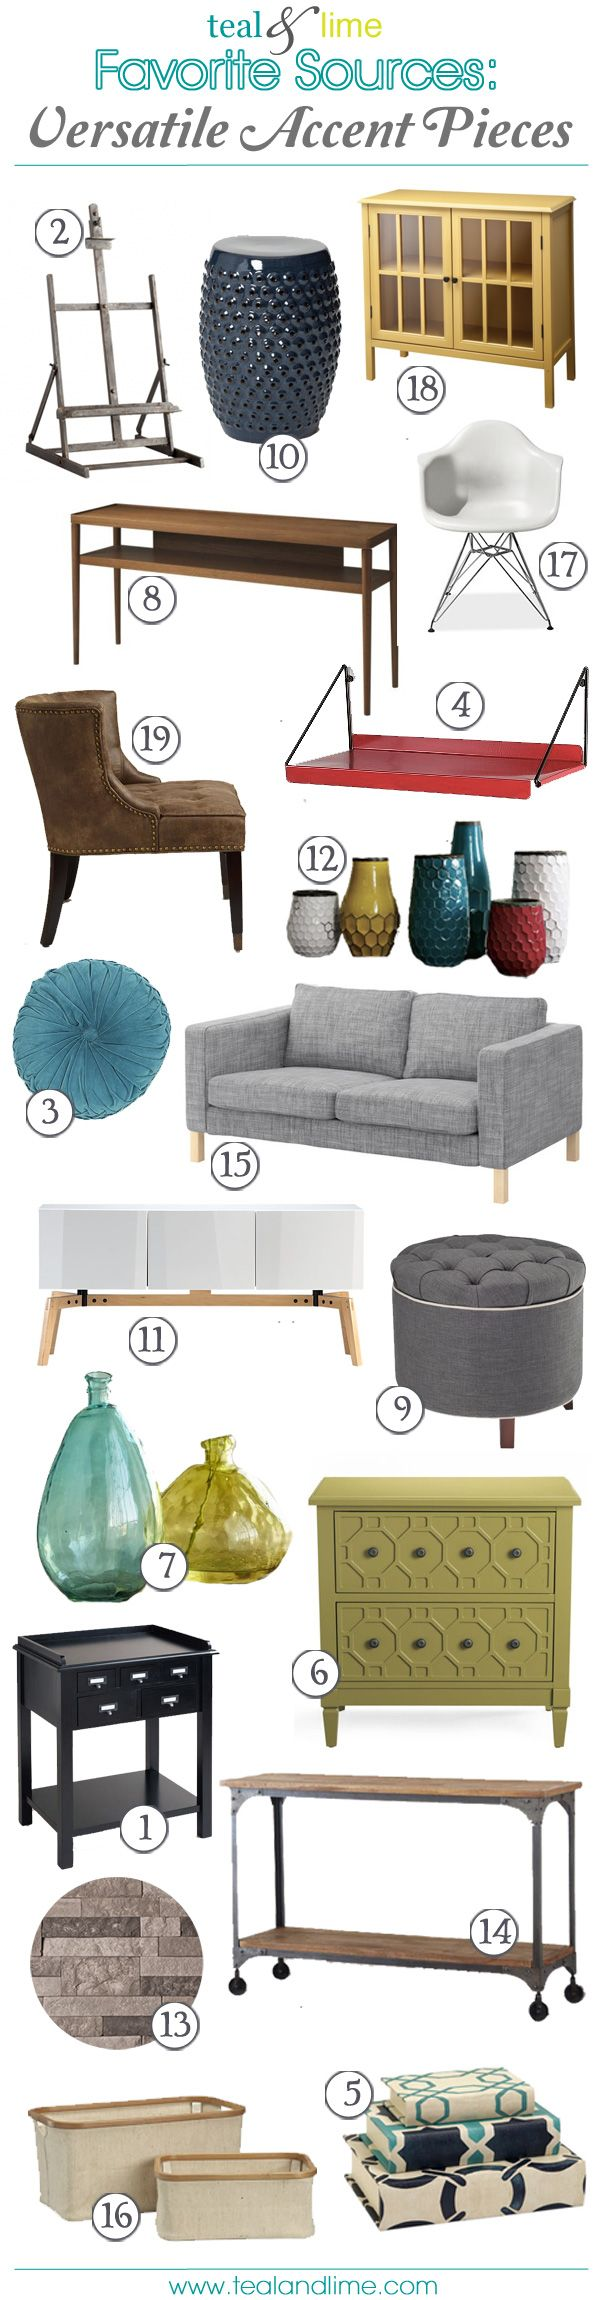 Favorite Sources: Versatile Accent Pieces…. and tons of room decorating ideas!